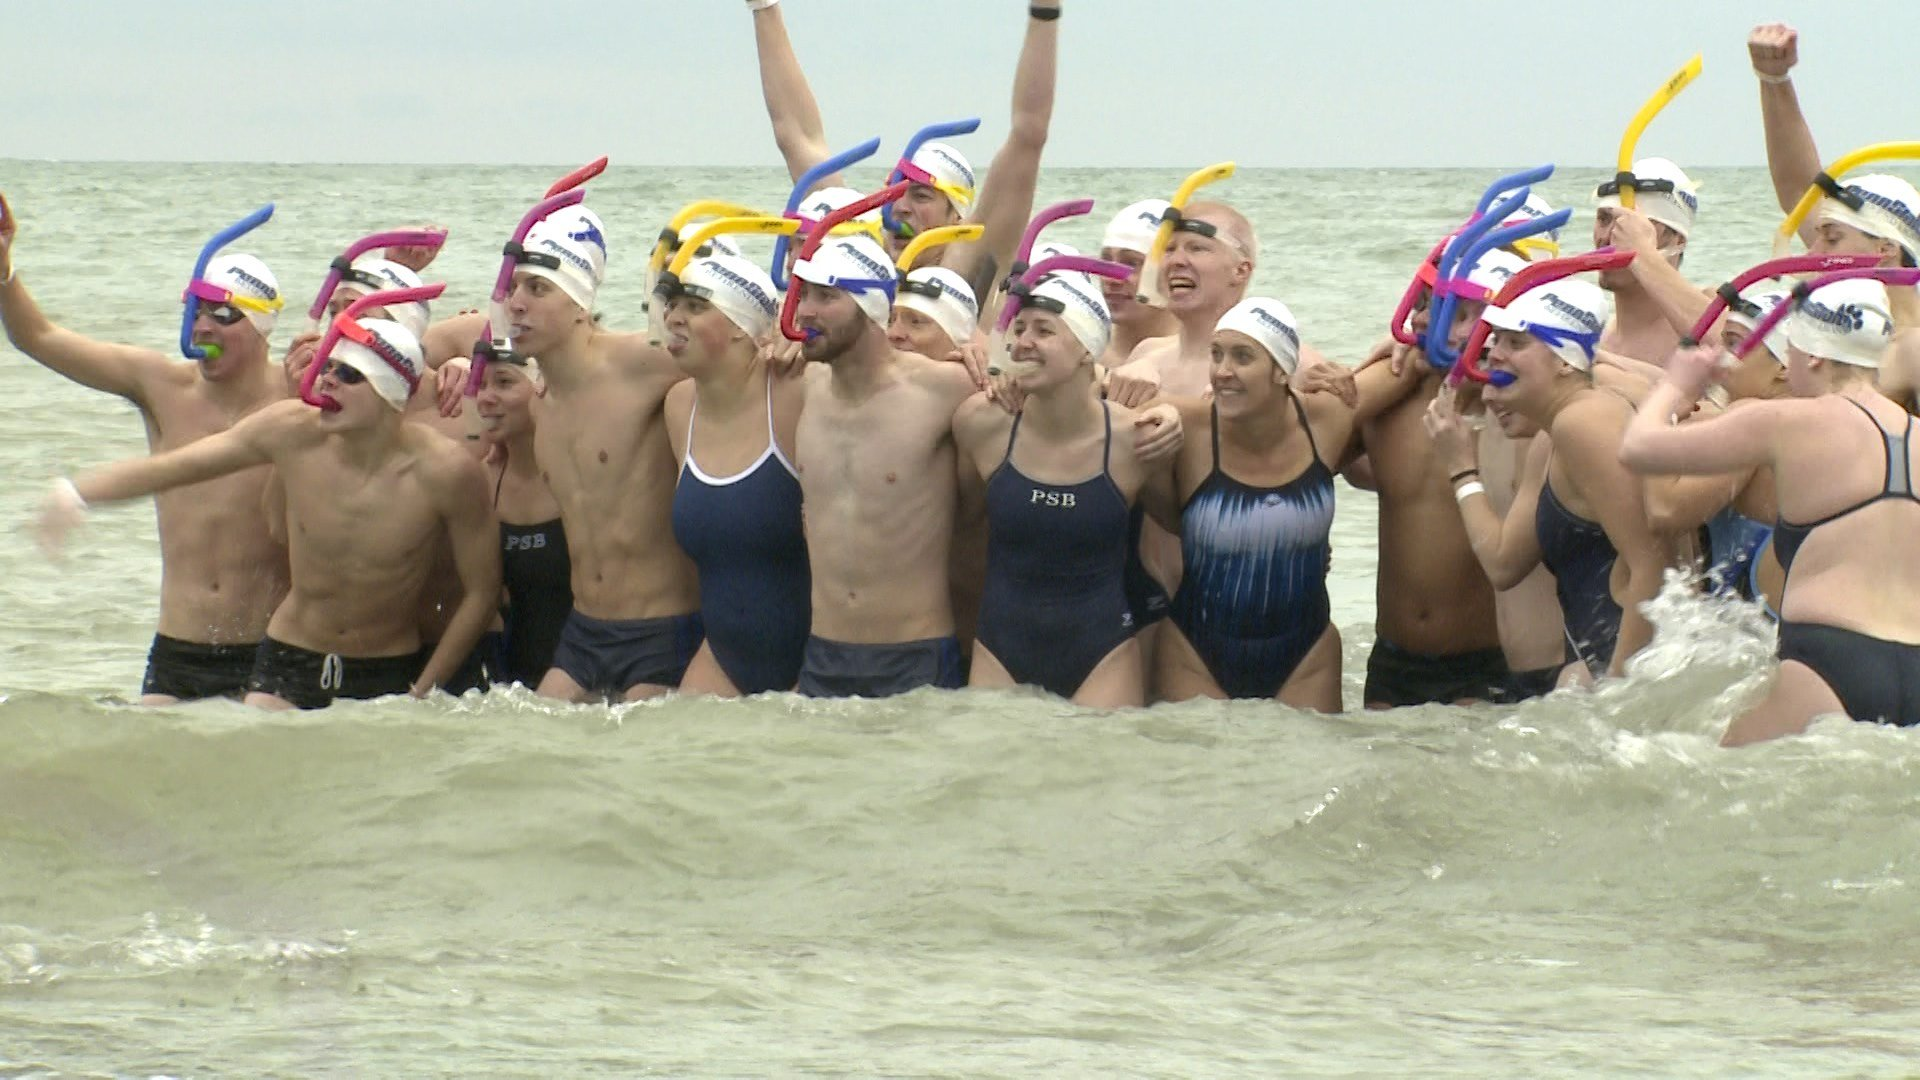 Polar Plunge at Presque Isle raises funds for Special Olympics